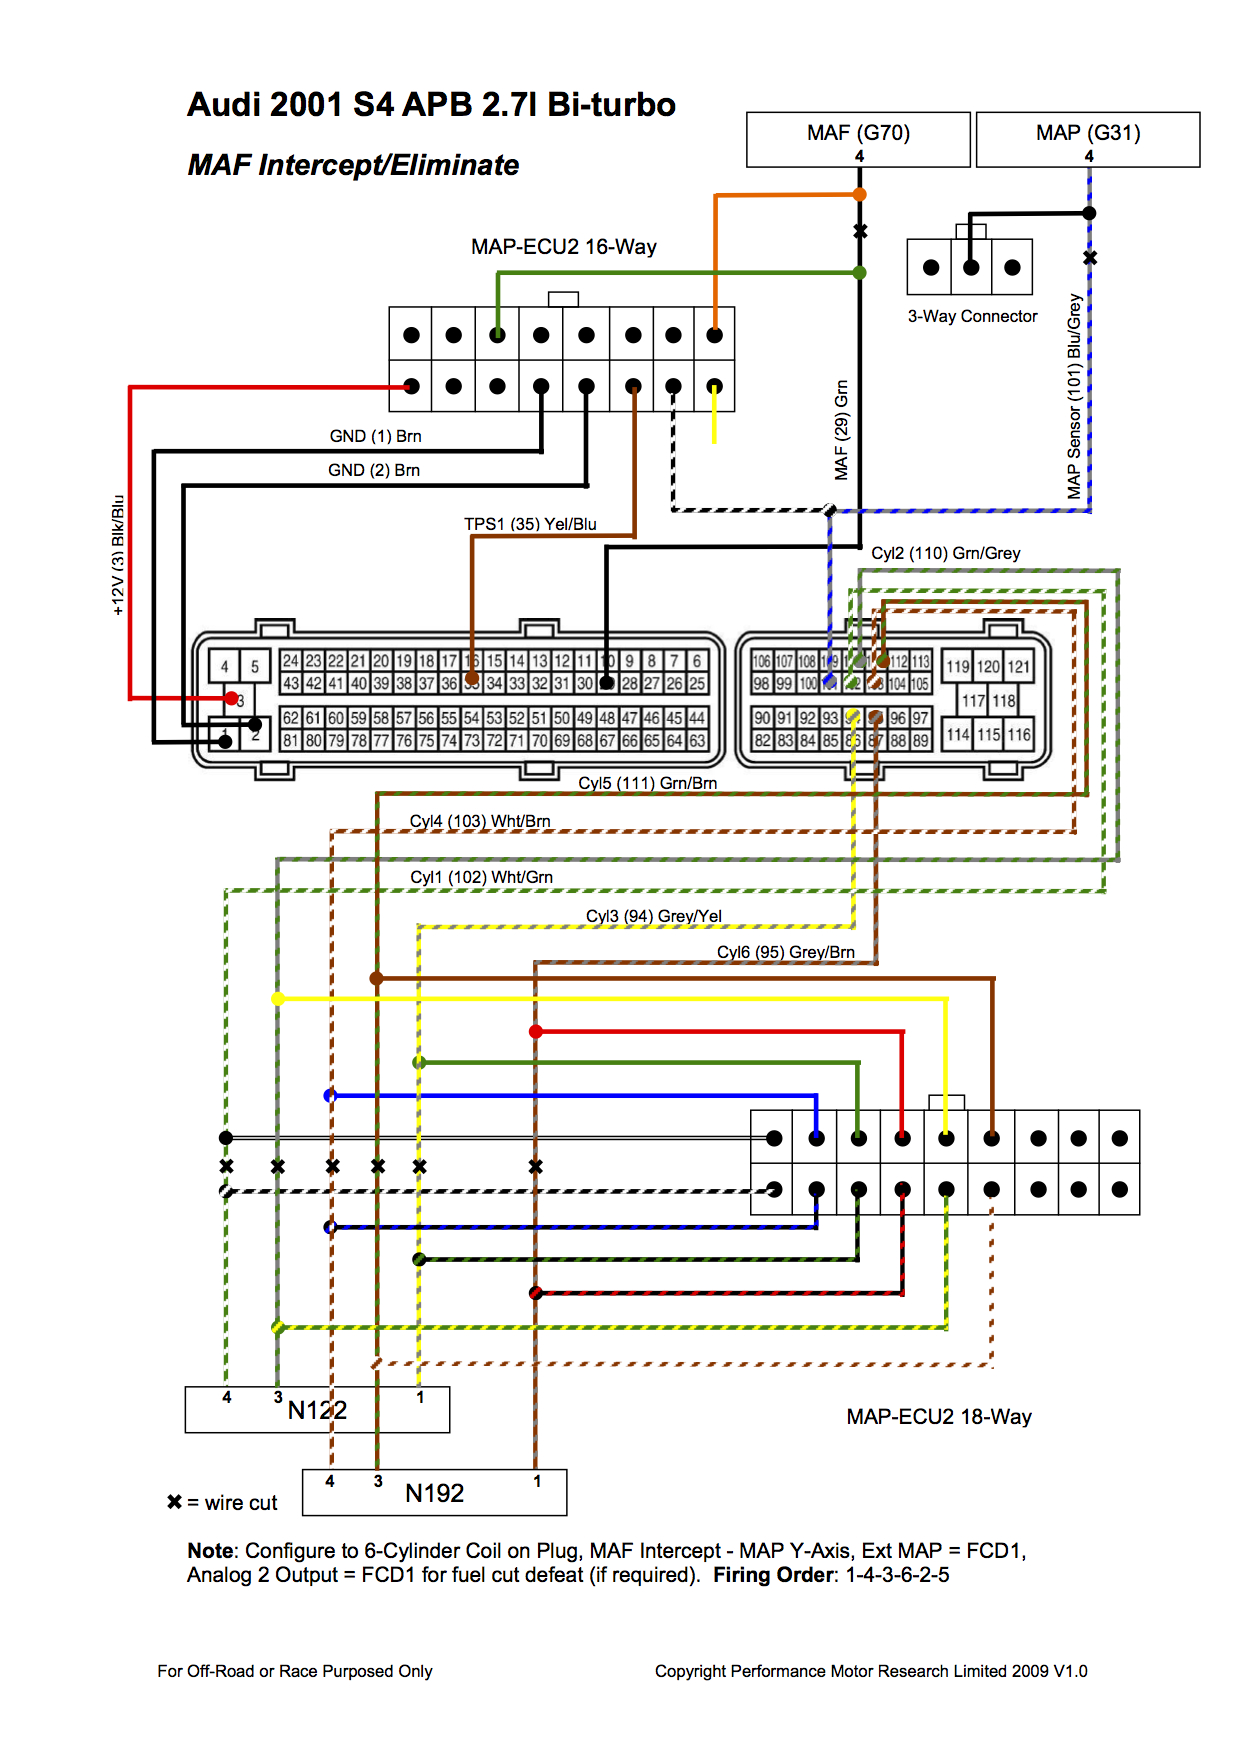 Audi S4 20011 300zx wiring diagram 300zx fuel system diagram \u2022 wiring diagrams 2015 honda fit radio wiring diagram at bayanpartner.co